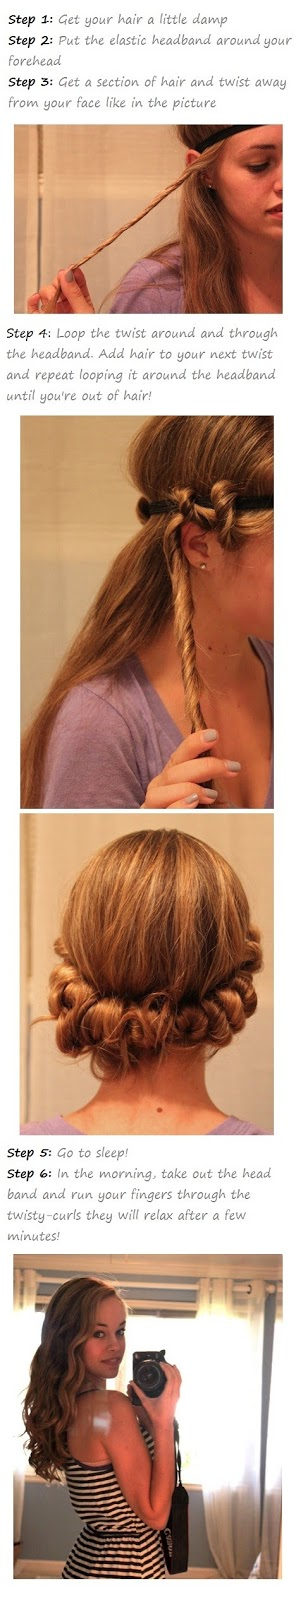 How to make twisty curls